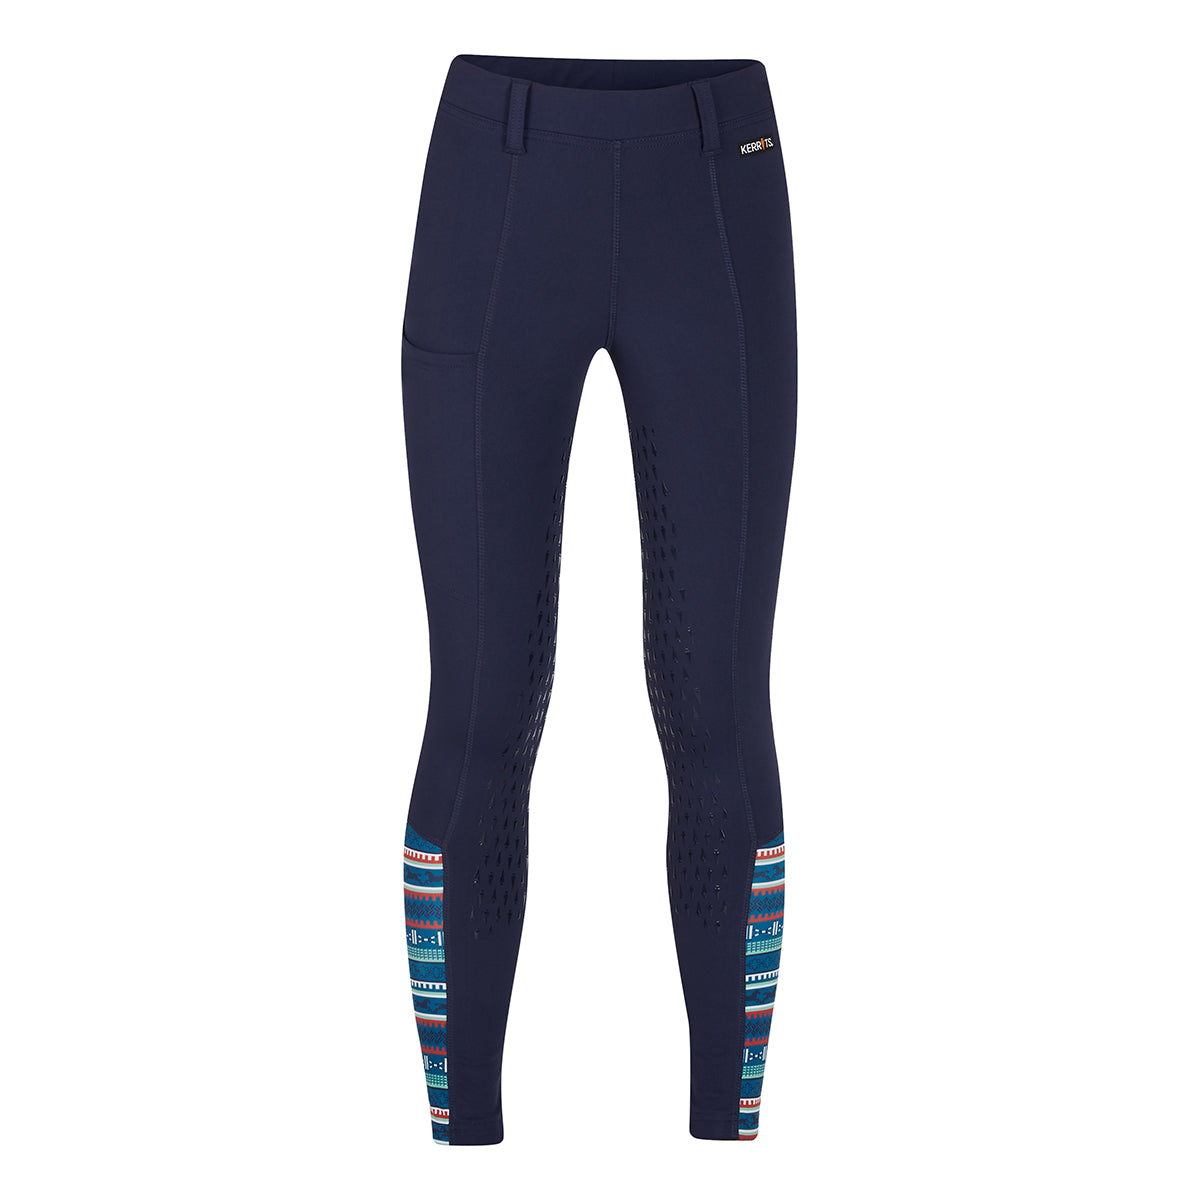 Kerrits Kid's Thermo Tech Full Leg Tight